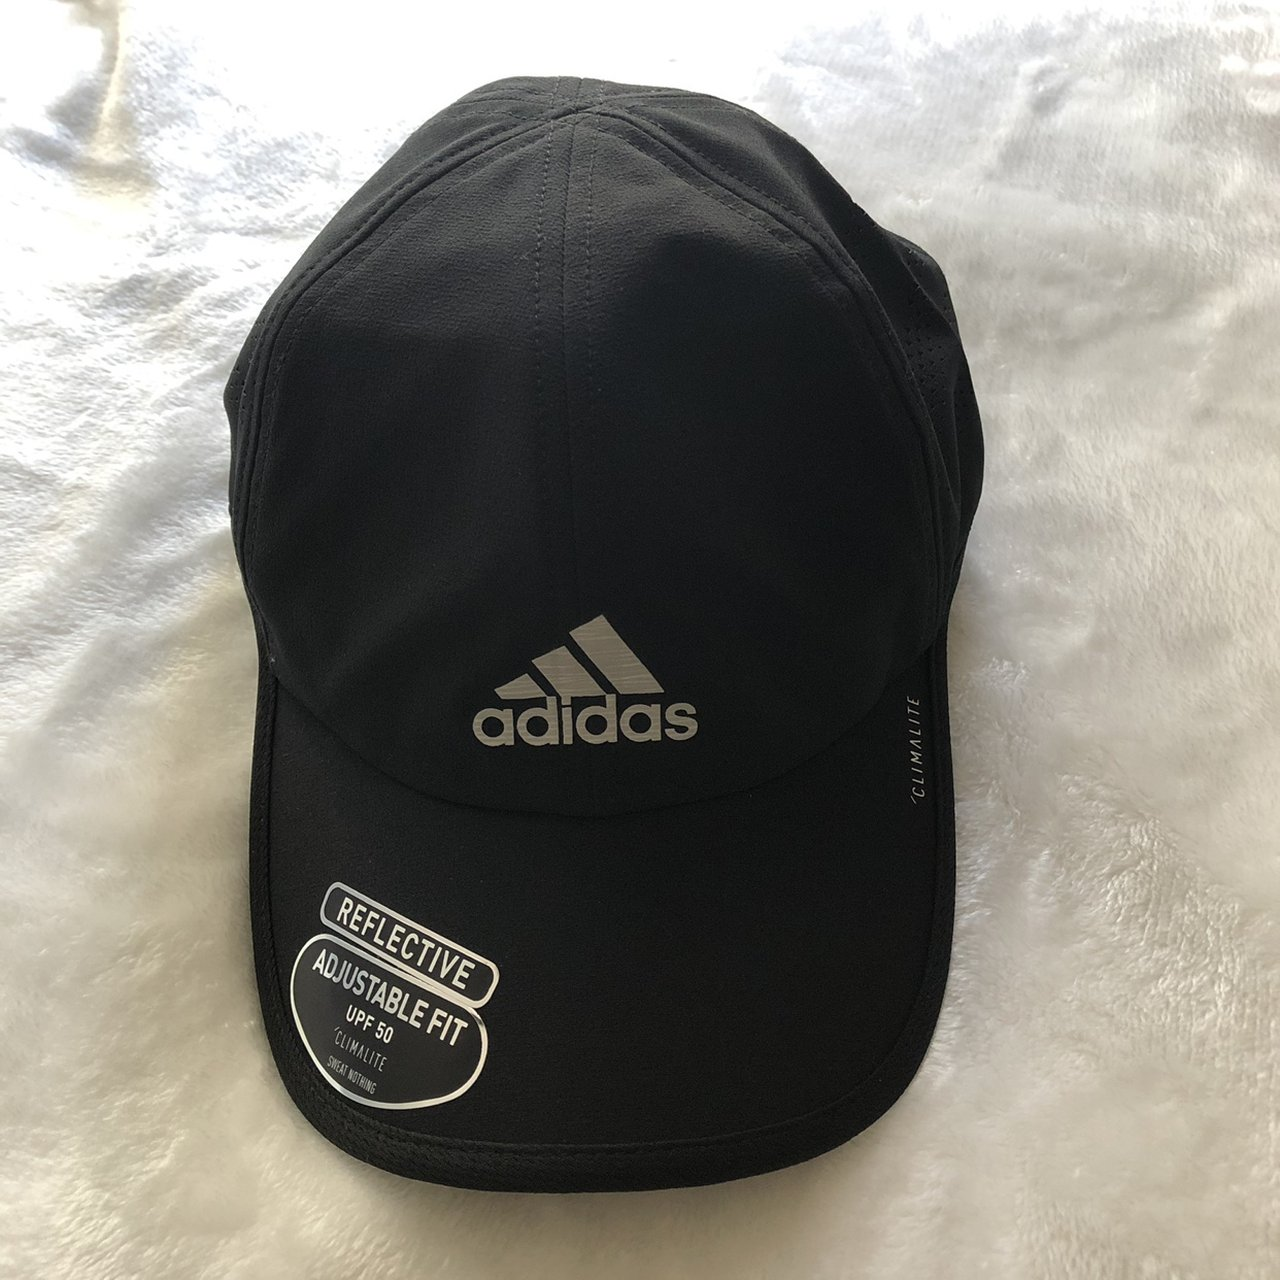 795bc9d63a5 Black Adidas Reflective Cap Brand New w Tags One Size 1 - Depop